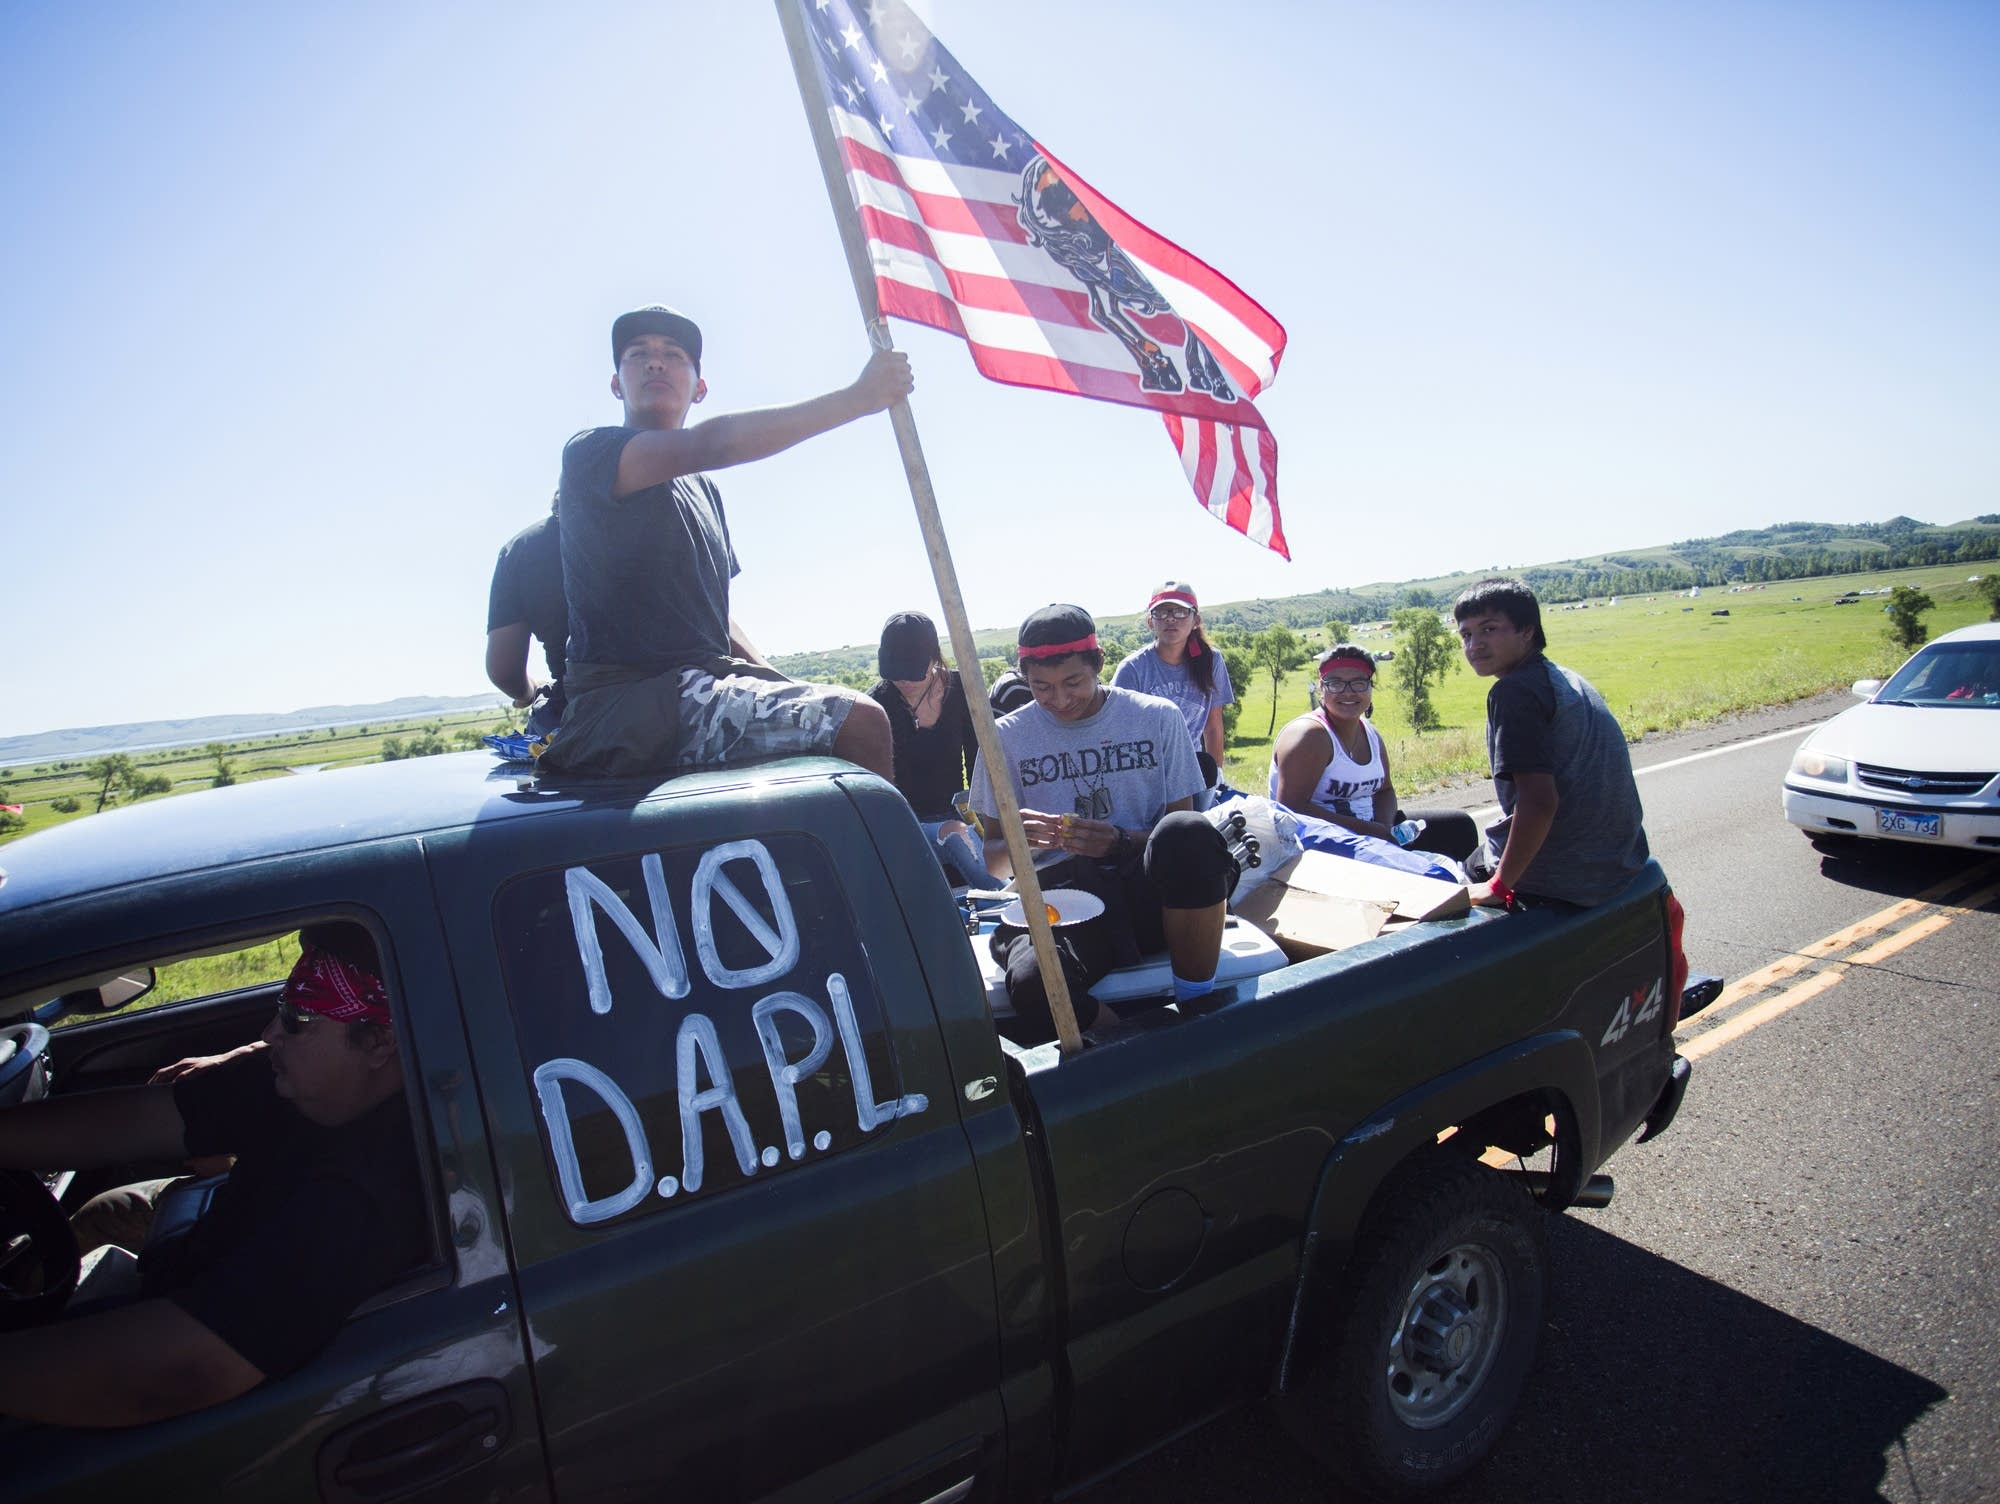 A car full of young people leave the camp.